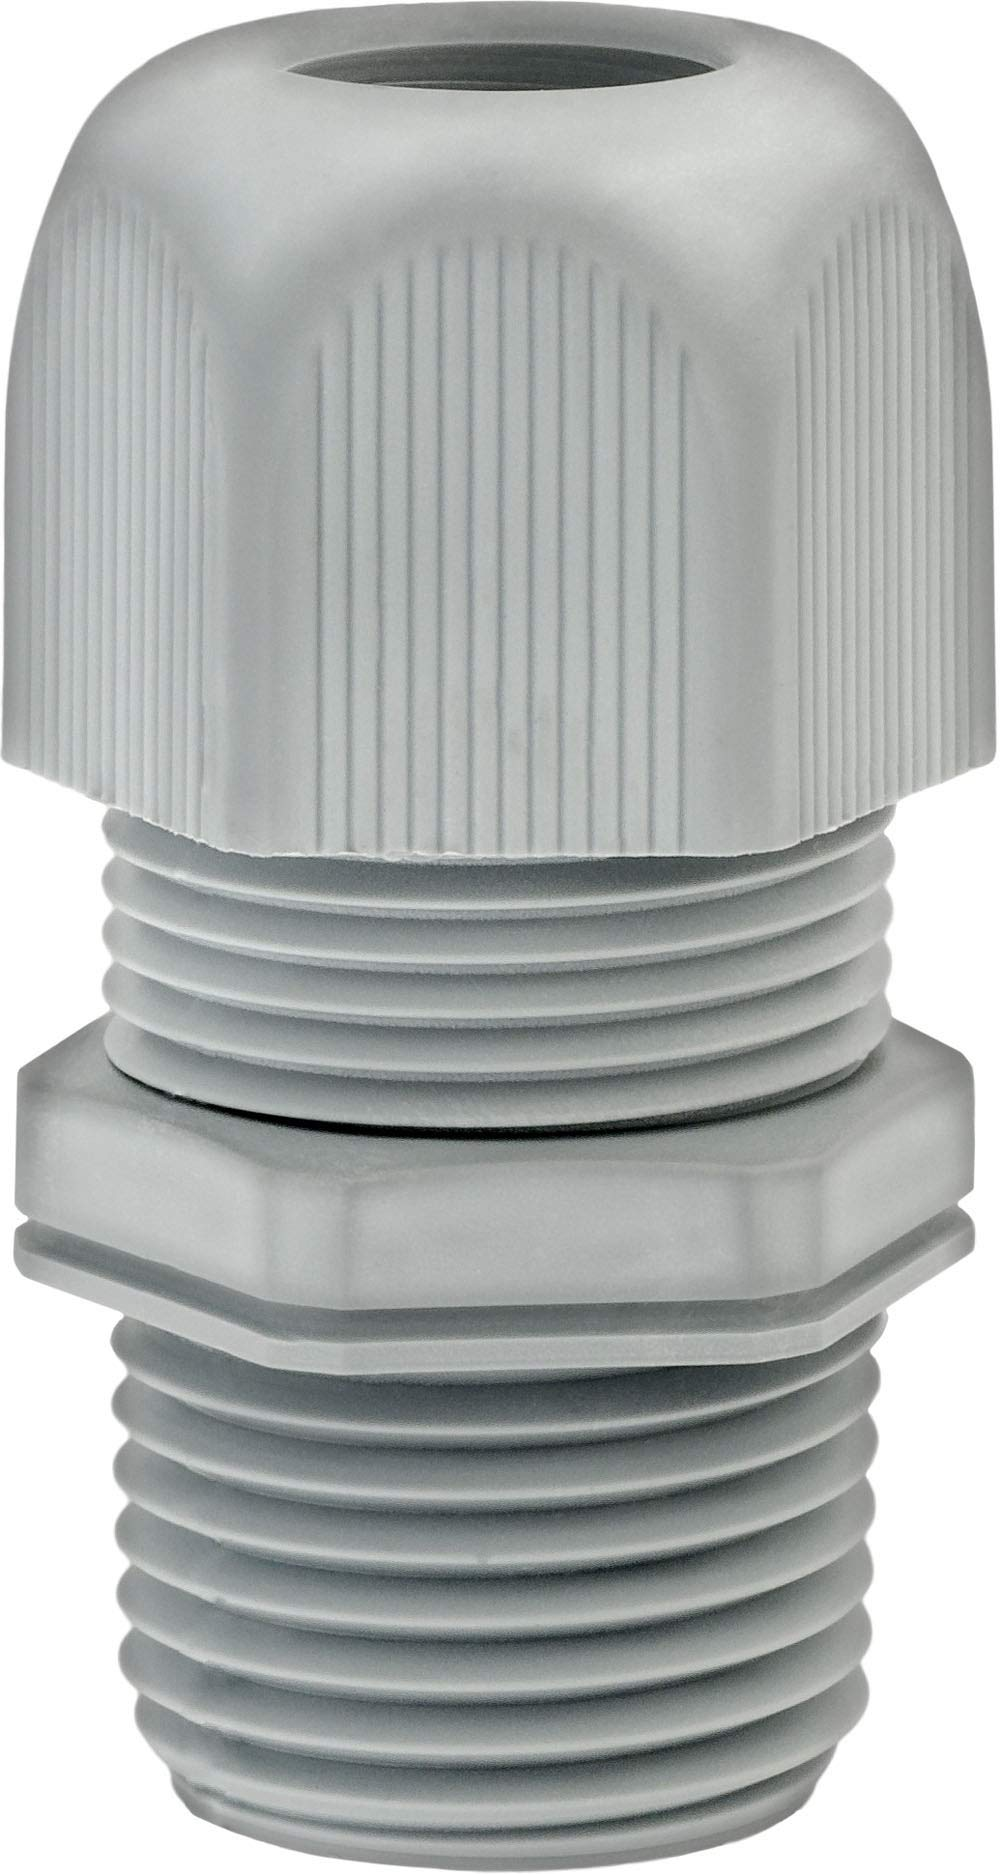 Strain Relief Cord Connector 1/2 Thread by Clipsandfasteners Inc (Image #1)